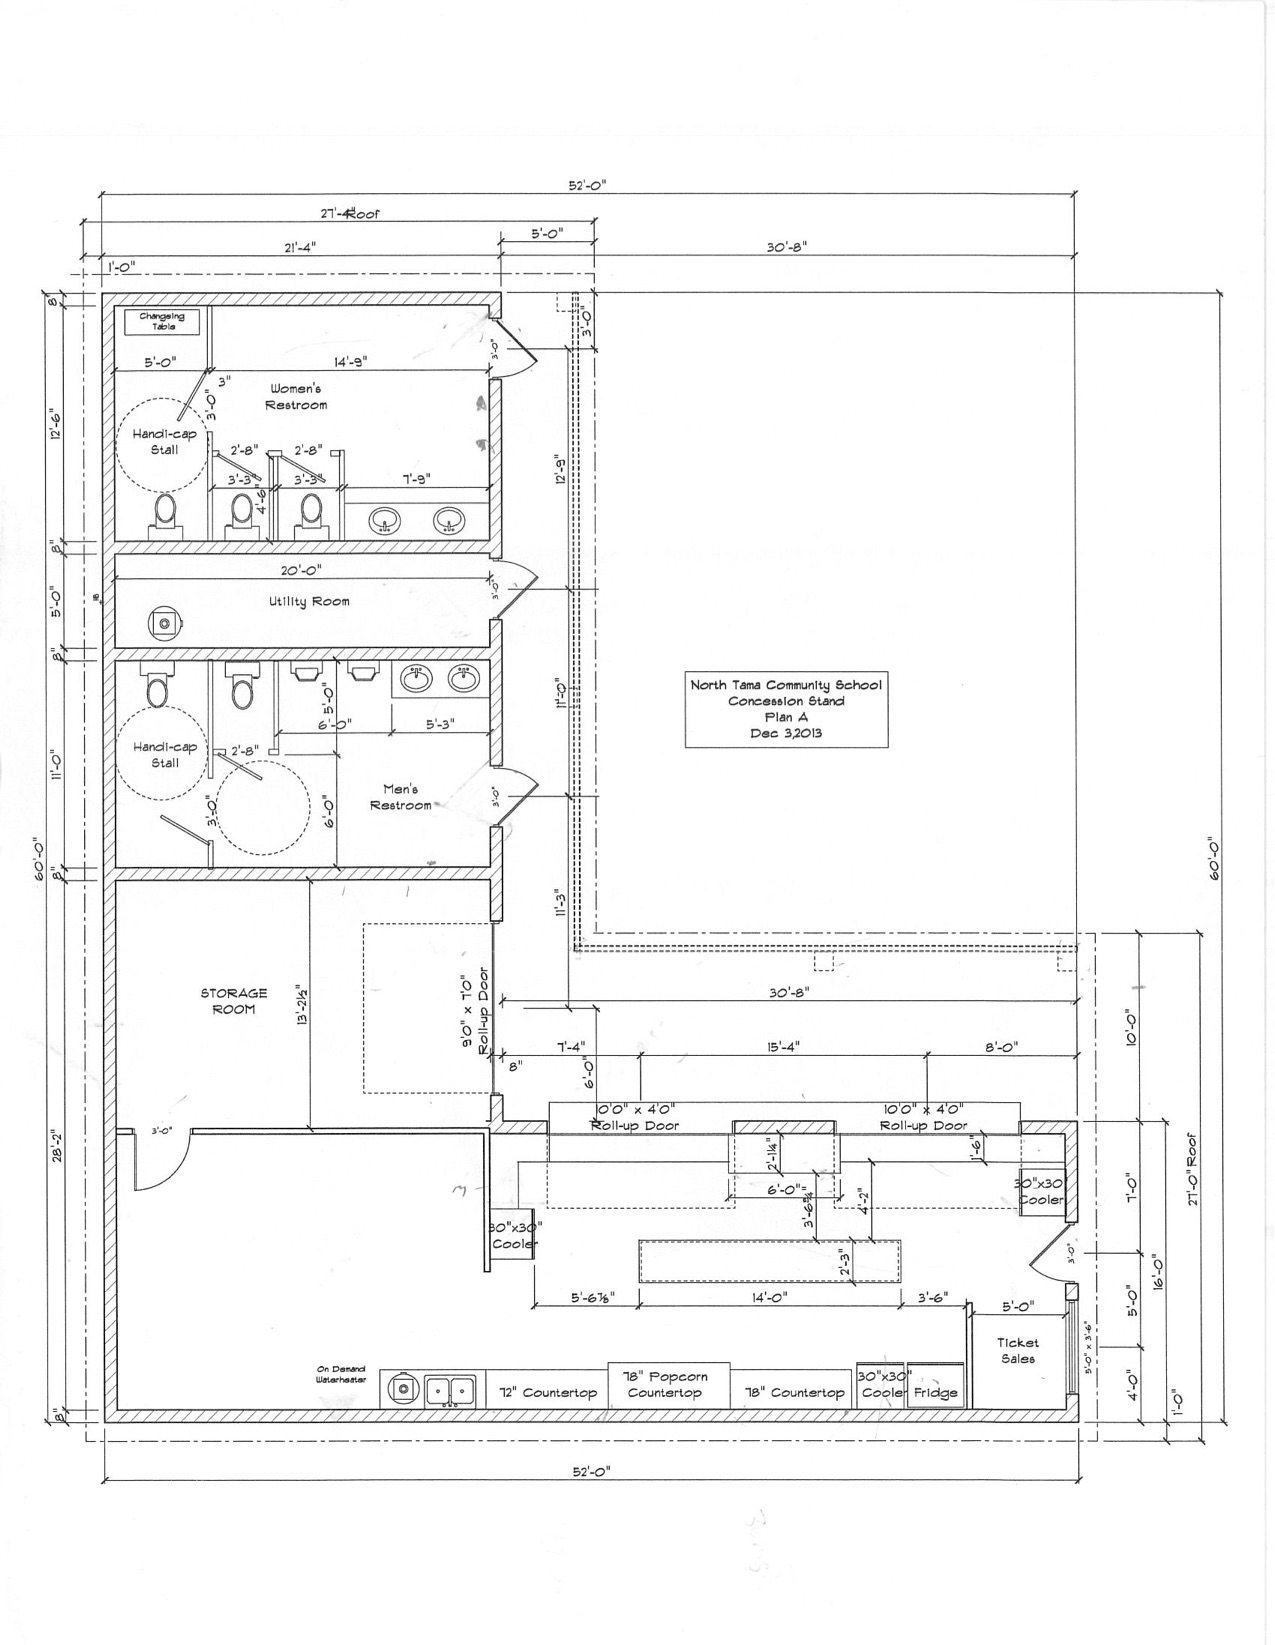 Concession Stand Plan